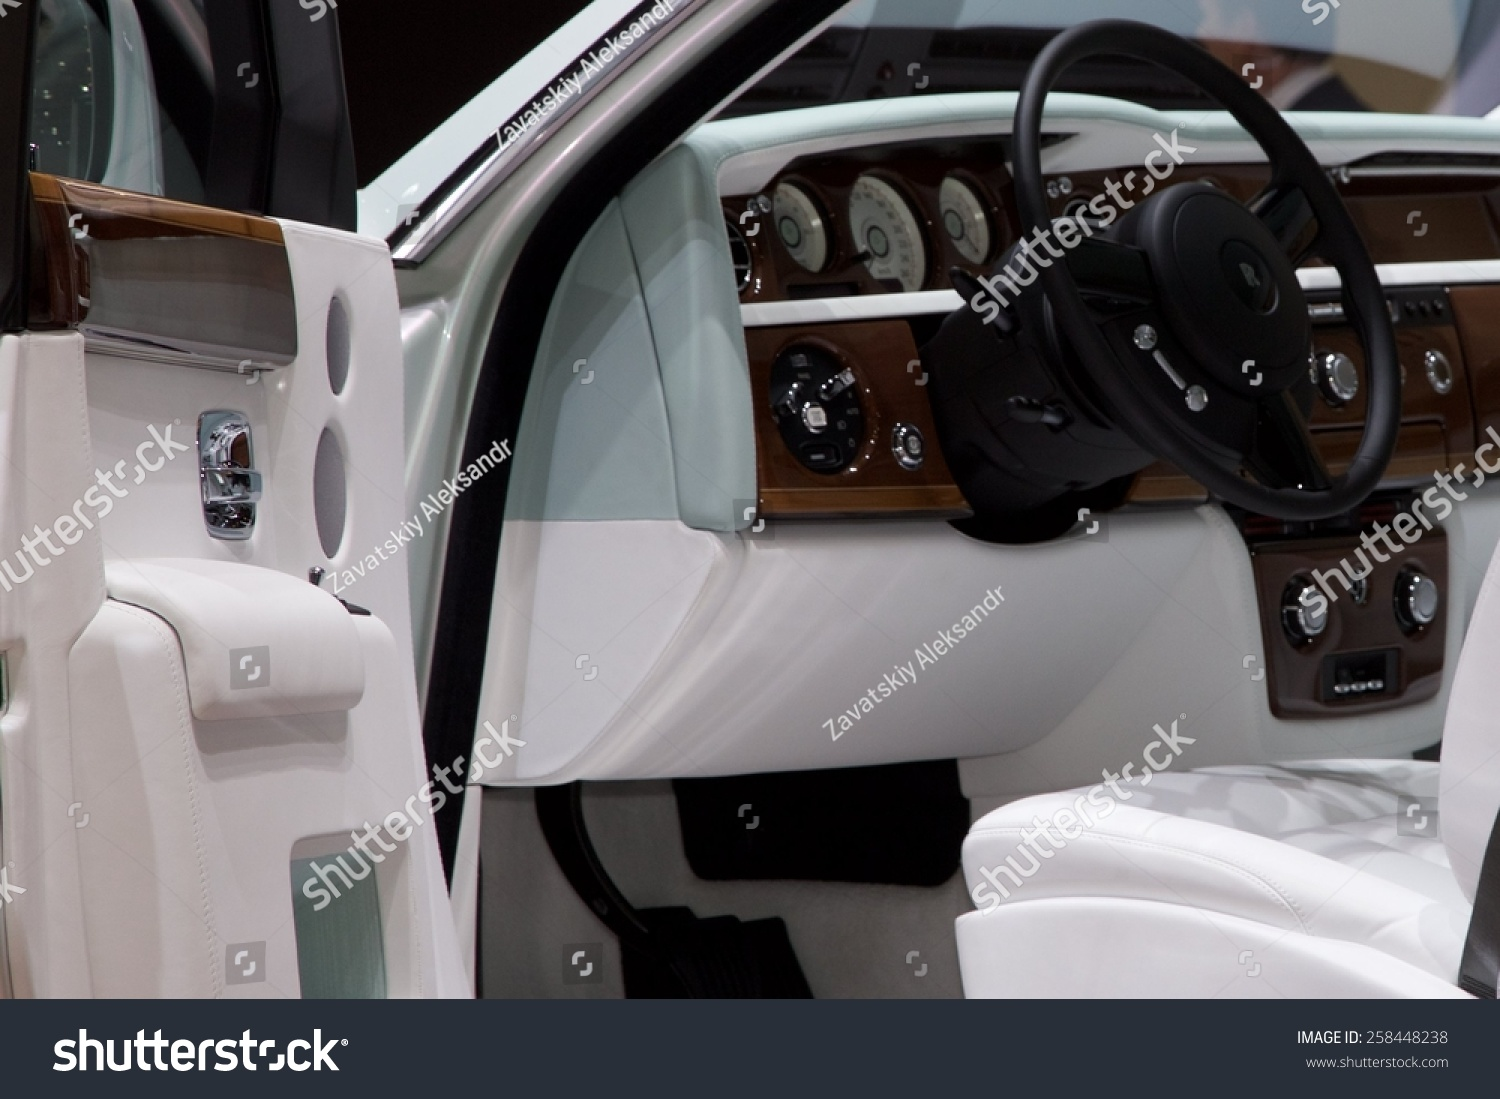 Phantom Serenity 2015 Rolls Royce Phantom Serenity Presented The 85th International